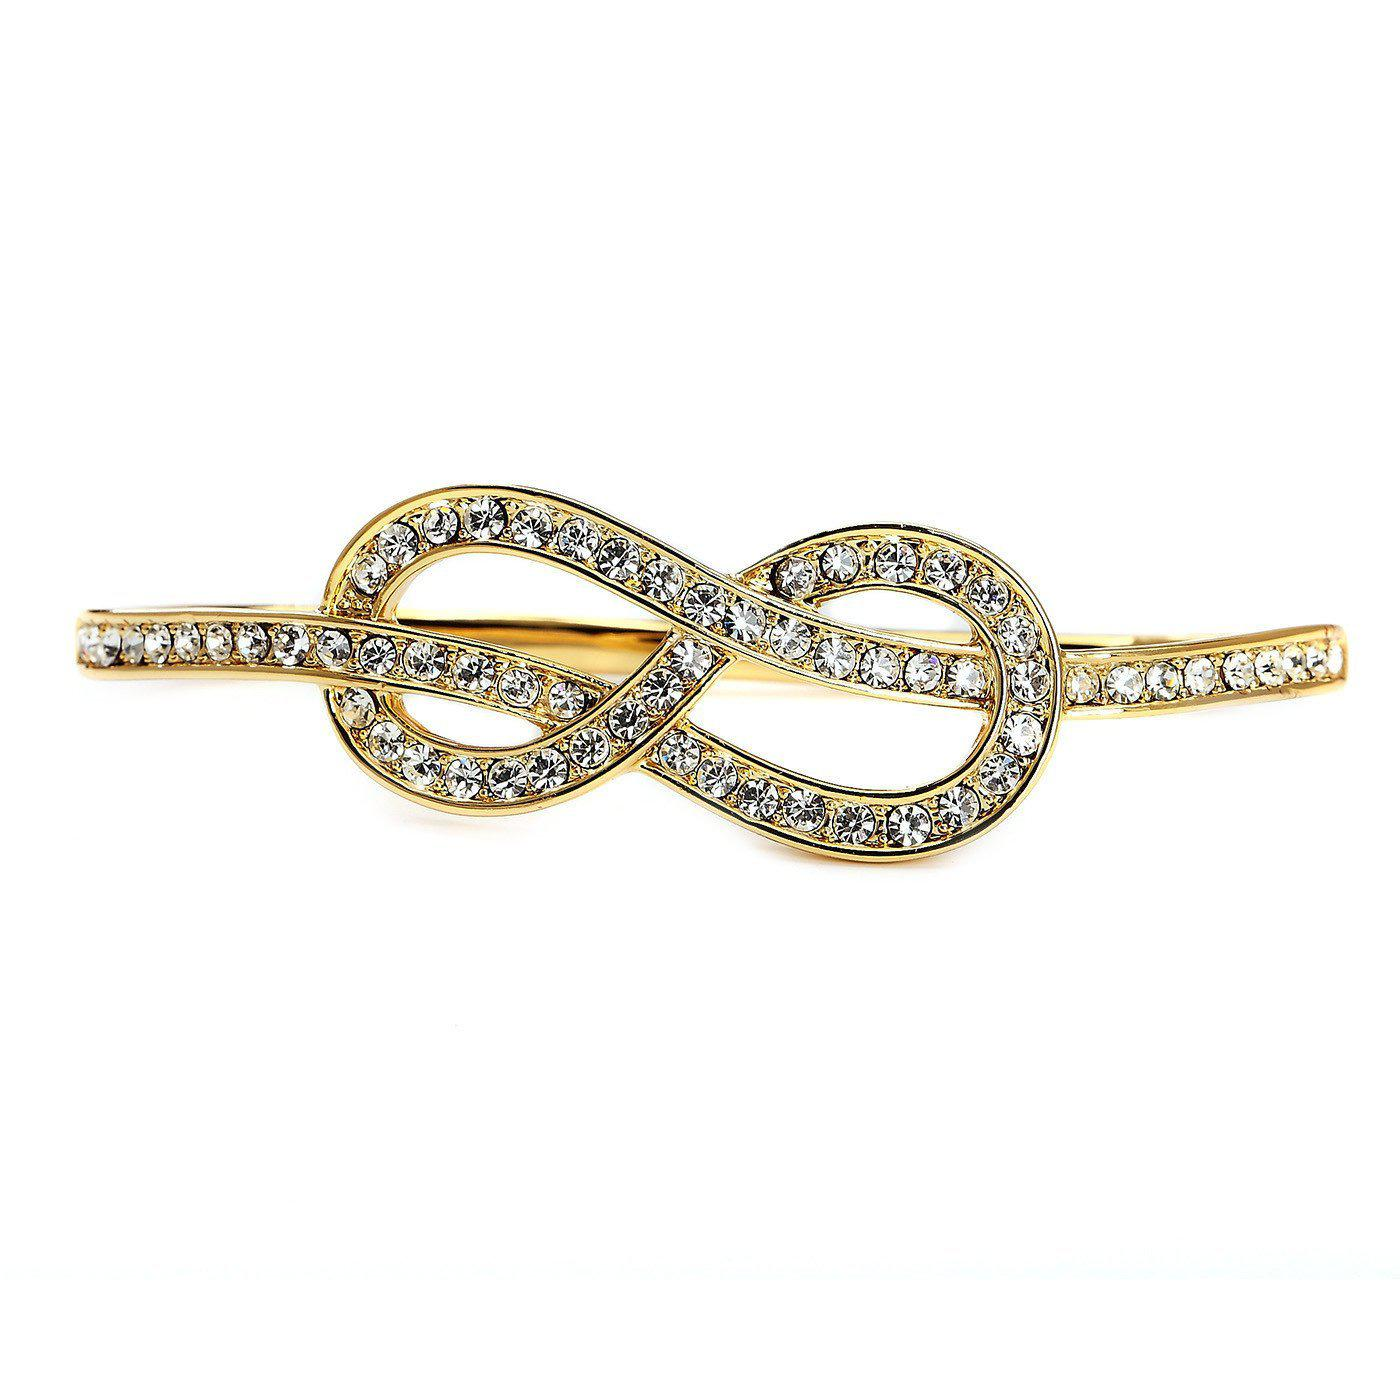 Infinity Gold Plated Palm Bracelet-Blinglane